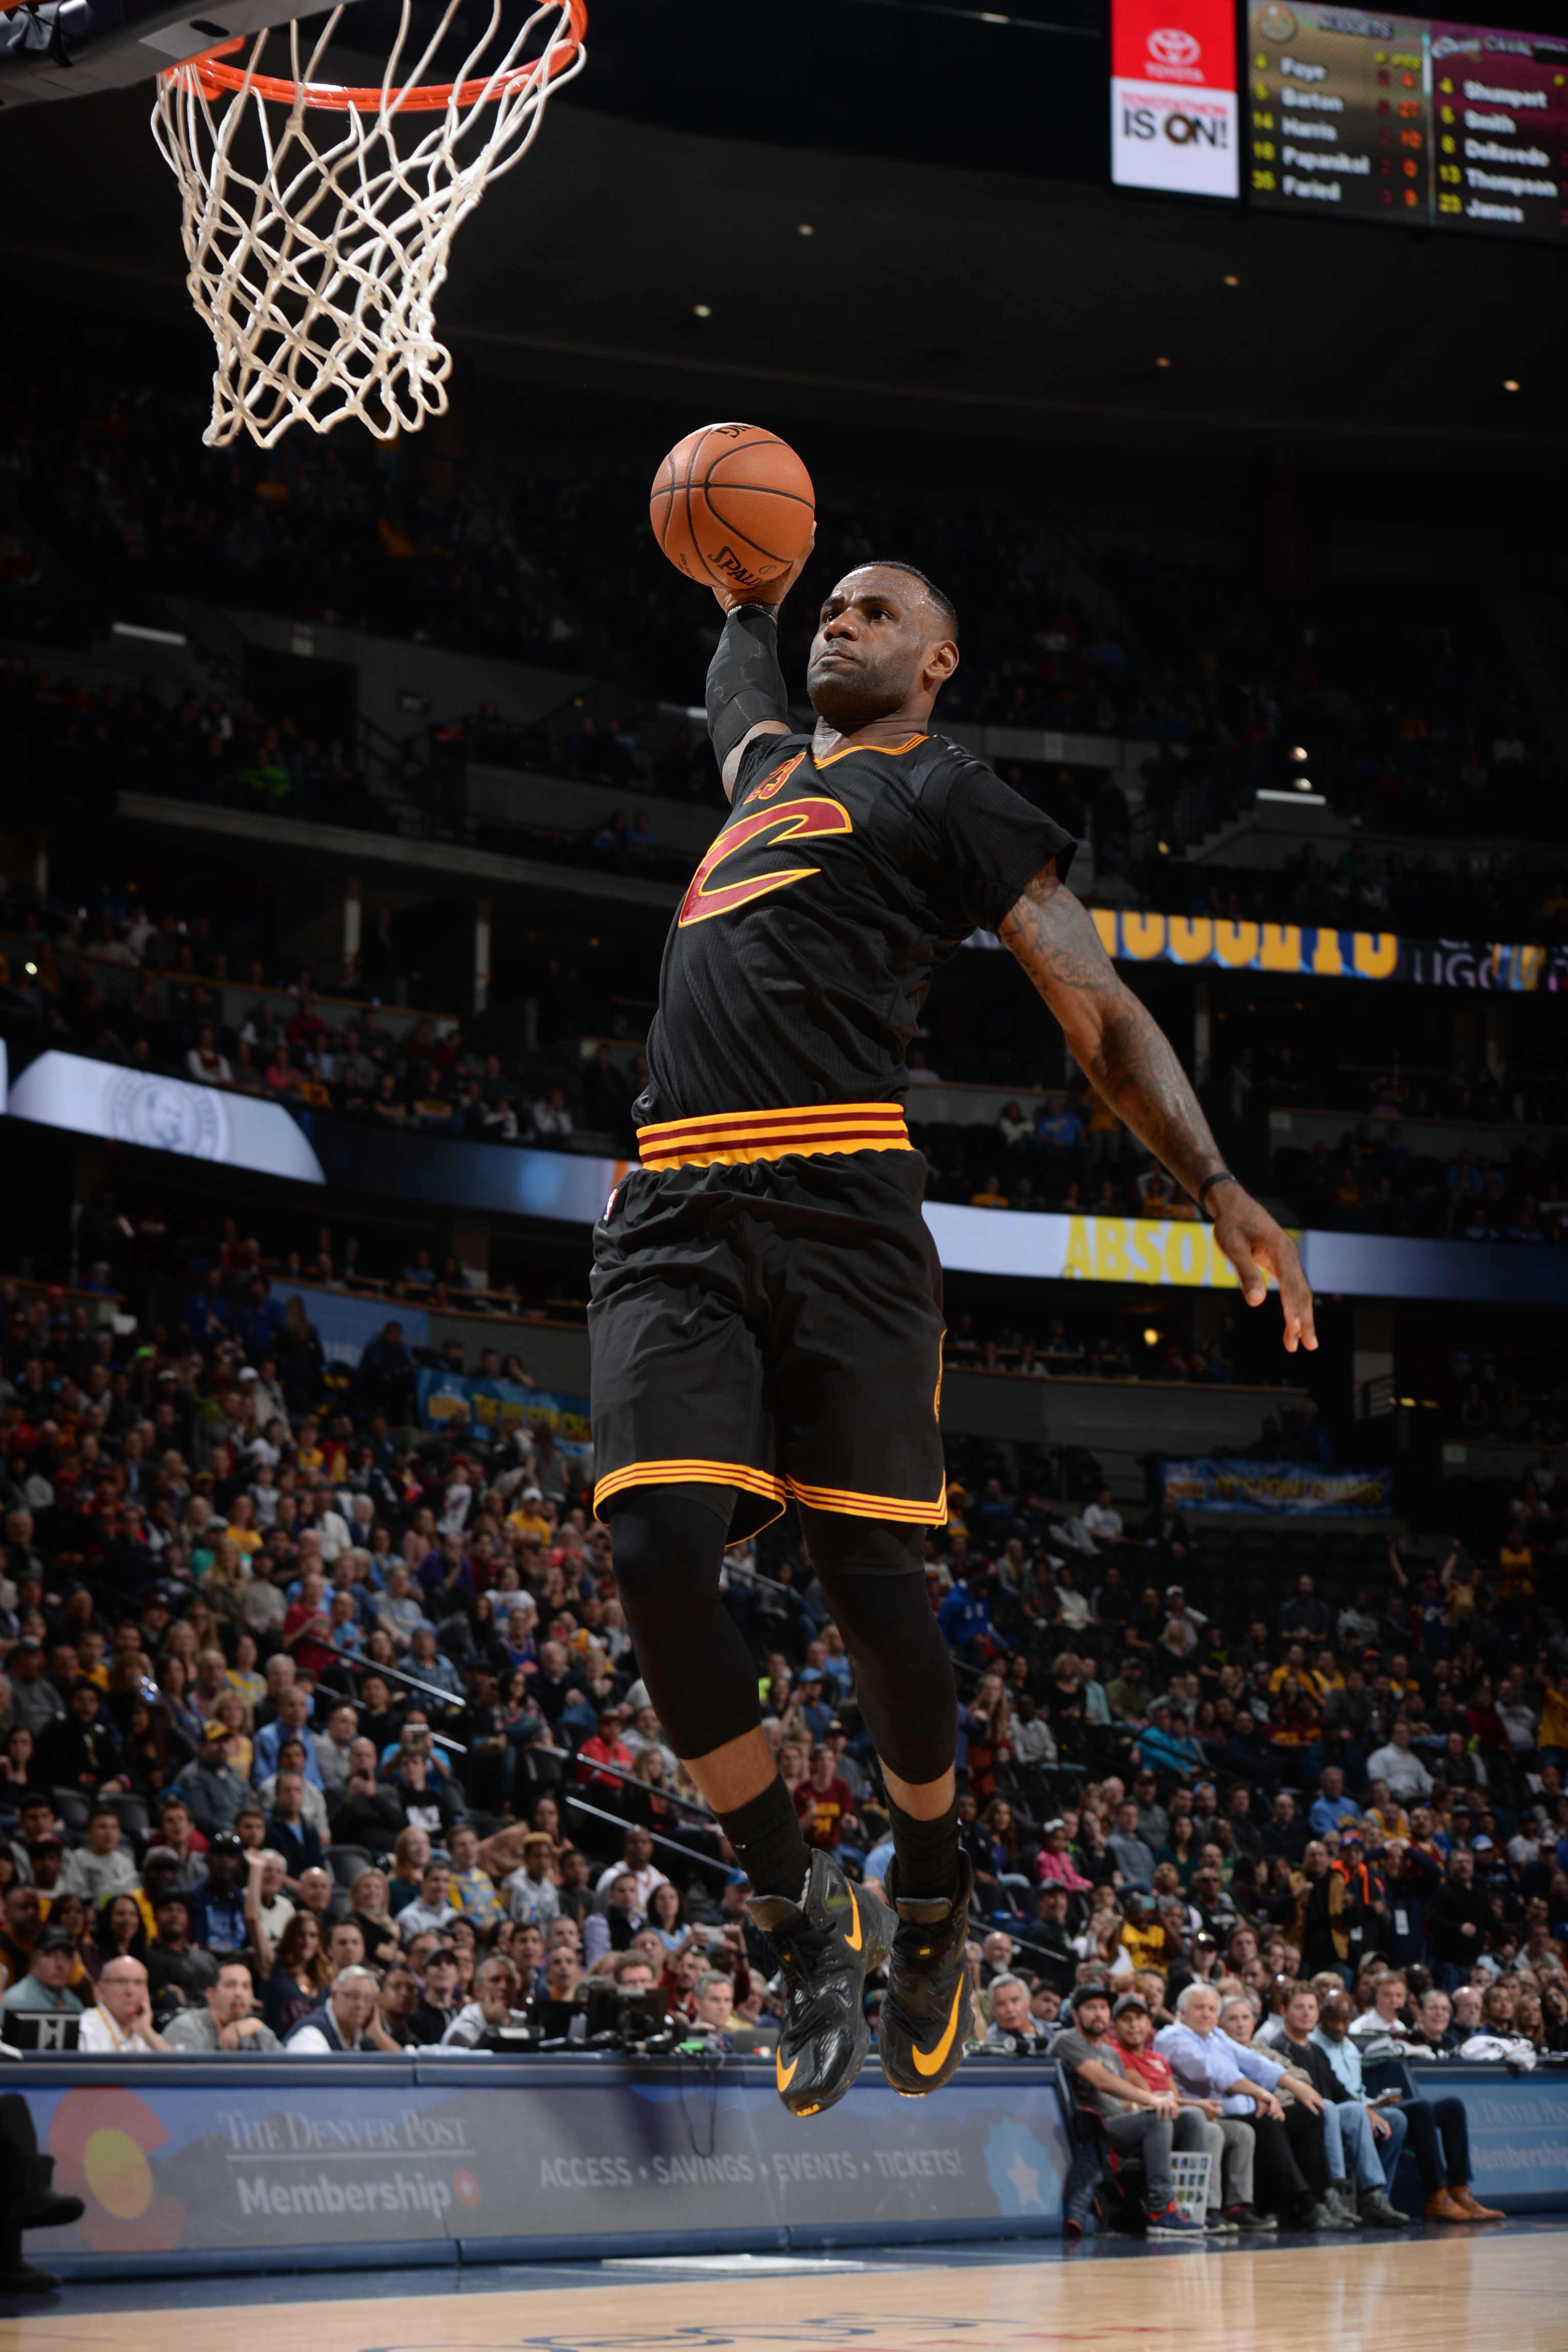 DENVER, CO - DECEMBER 29: LeBron James #23 of the Cleveland Cavaliers dunks against the Denver Nuggets during the game on December 29, 2015 at Pepsi Center in Denver, Colorado. (Photo by Garrett Ellwood/NBAE via Getty Images)